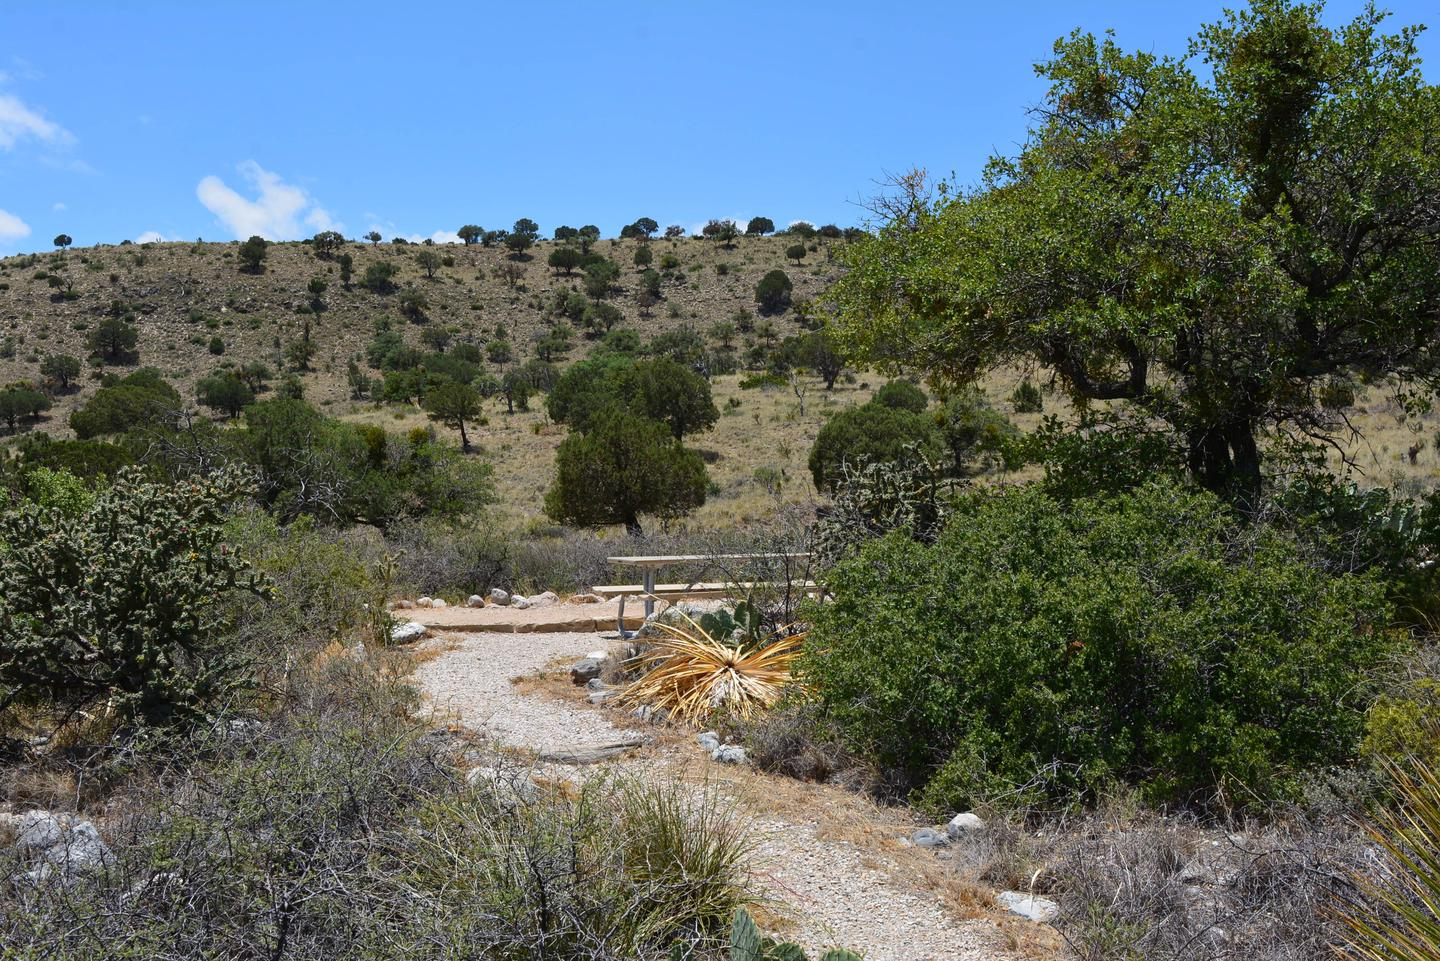 Footpath approaching campsite number seven from the east side of site, showing desert vegetation surrounding site.